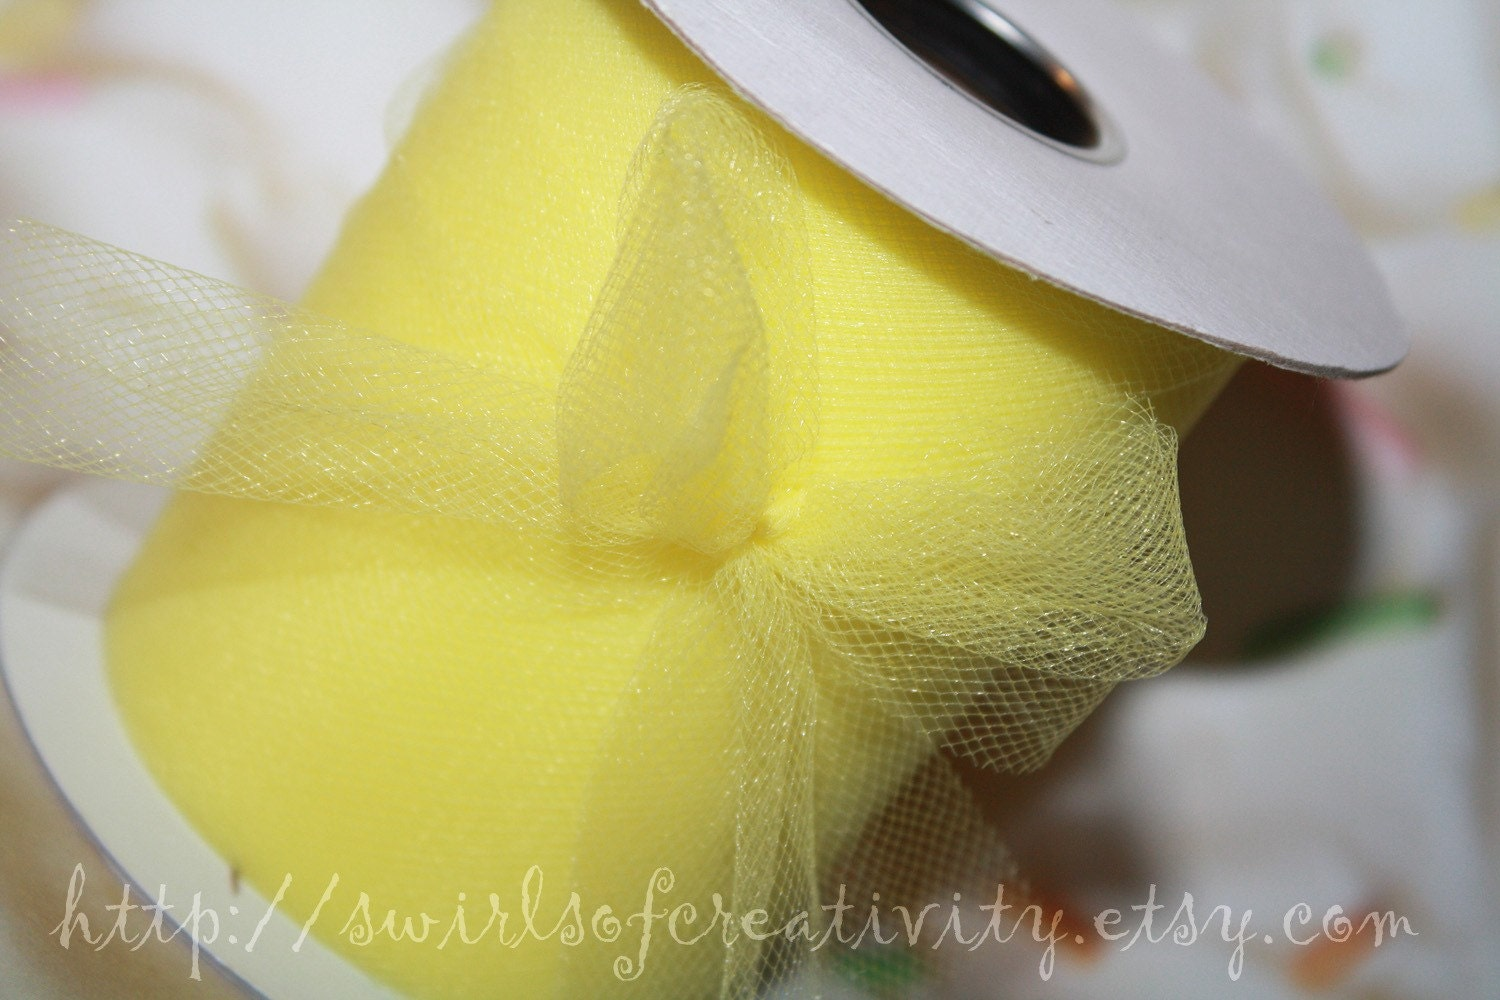 Mini Sunshine Yellow Spool New Tulle Ribbon Roll United States Made Flame Retardant USA High Quality 3 Inch x 25 Yards Lead Smoke Pet Free - SwirlsofCreativity